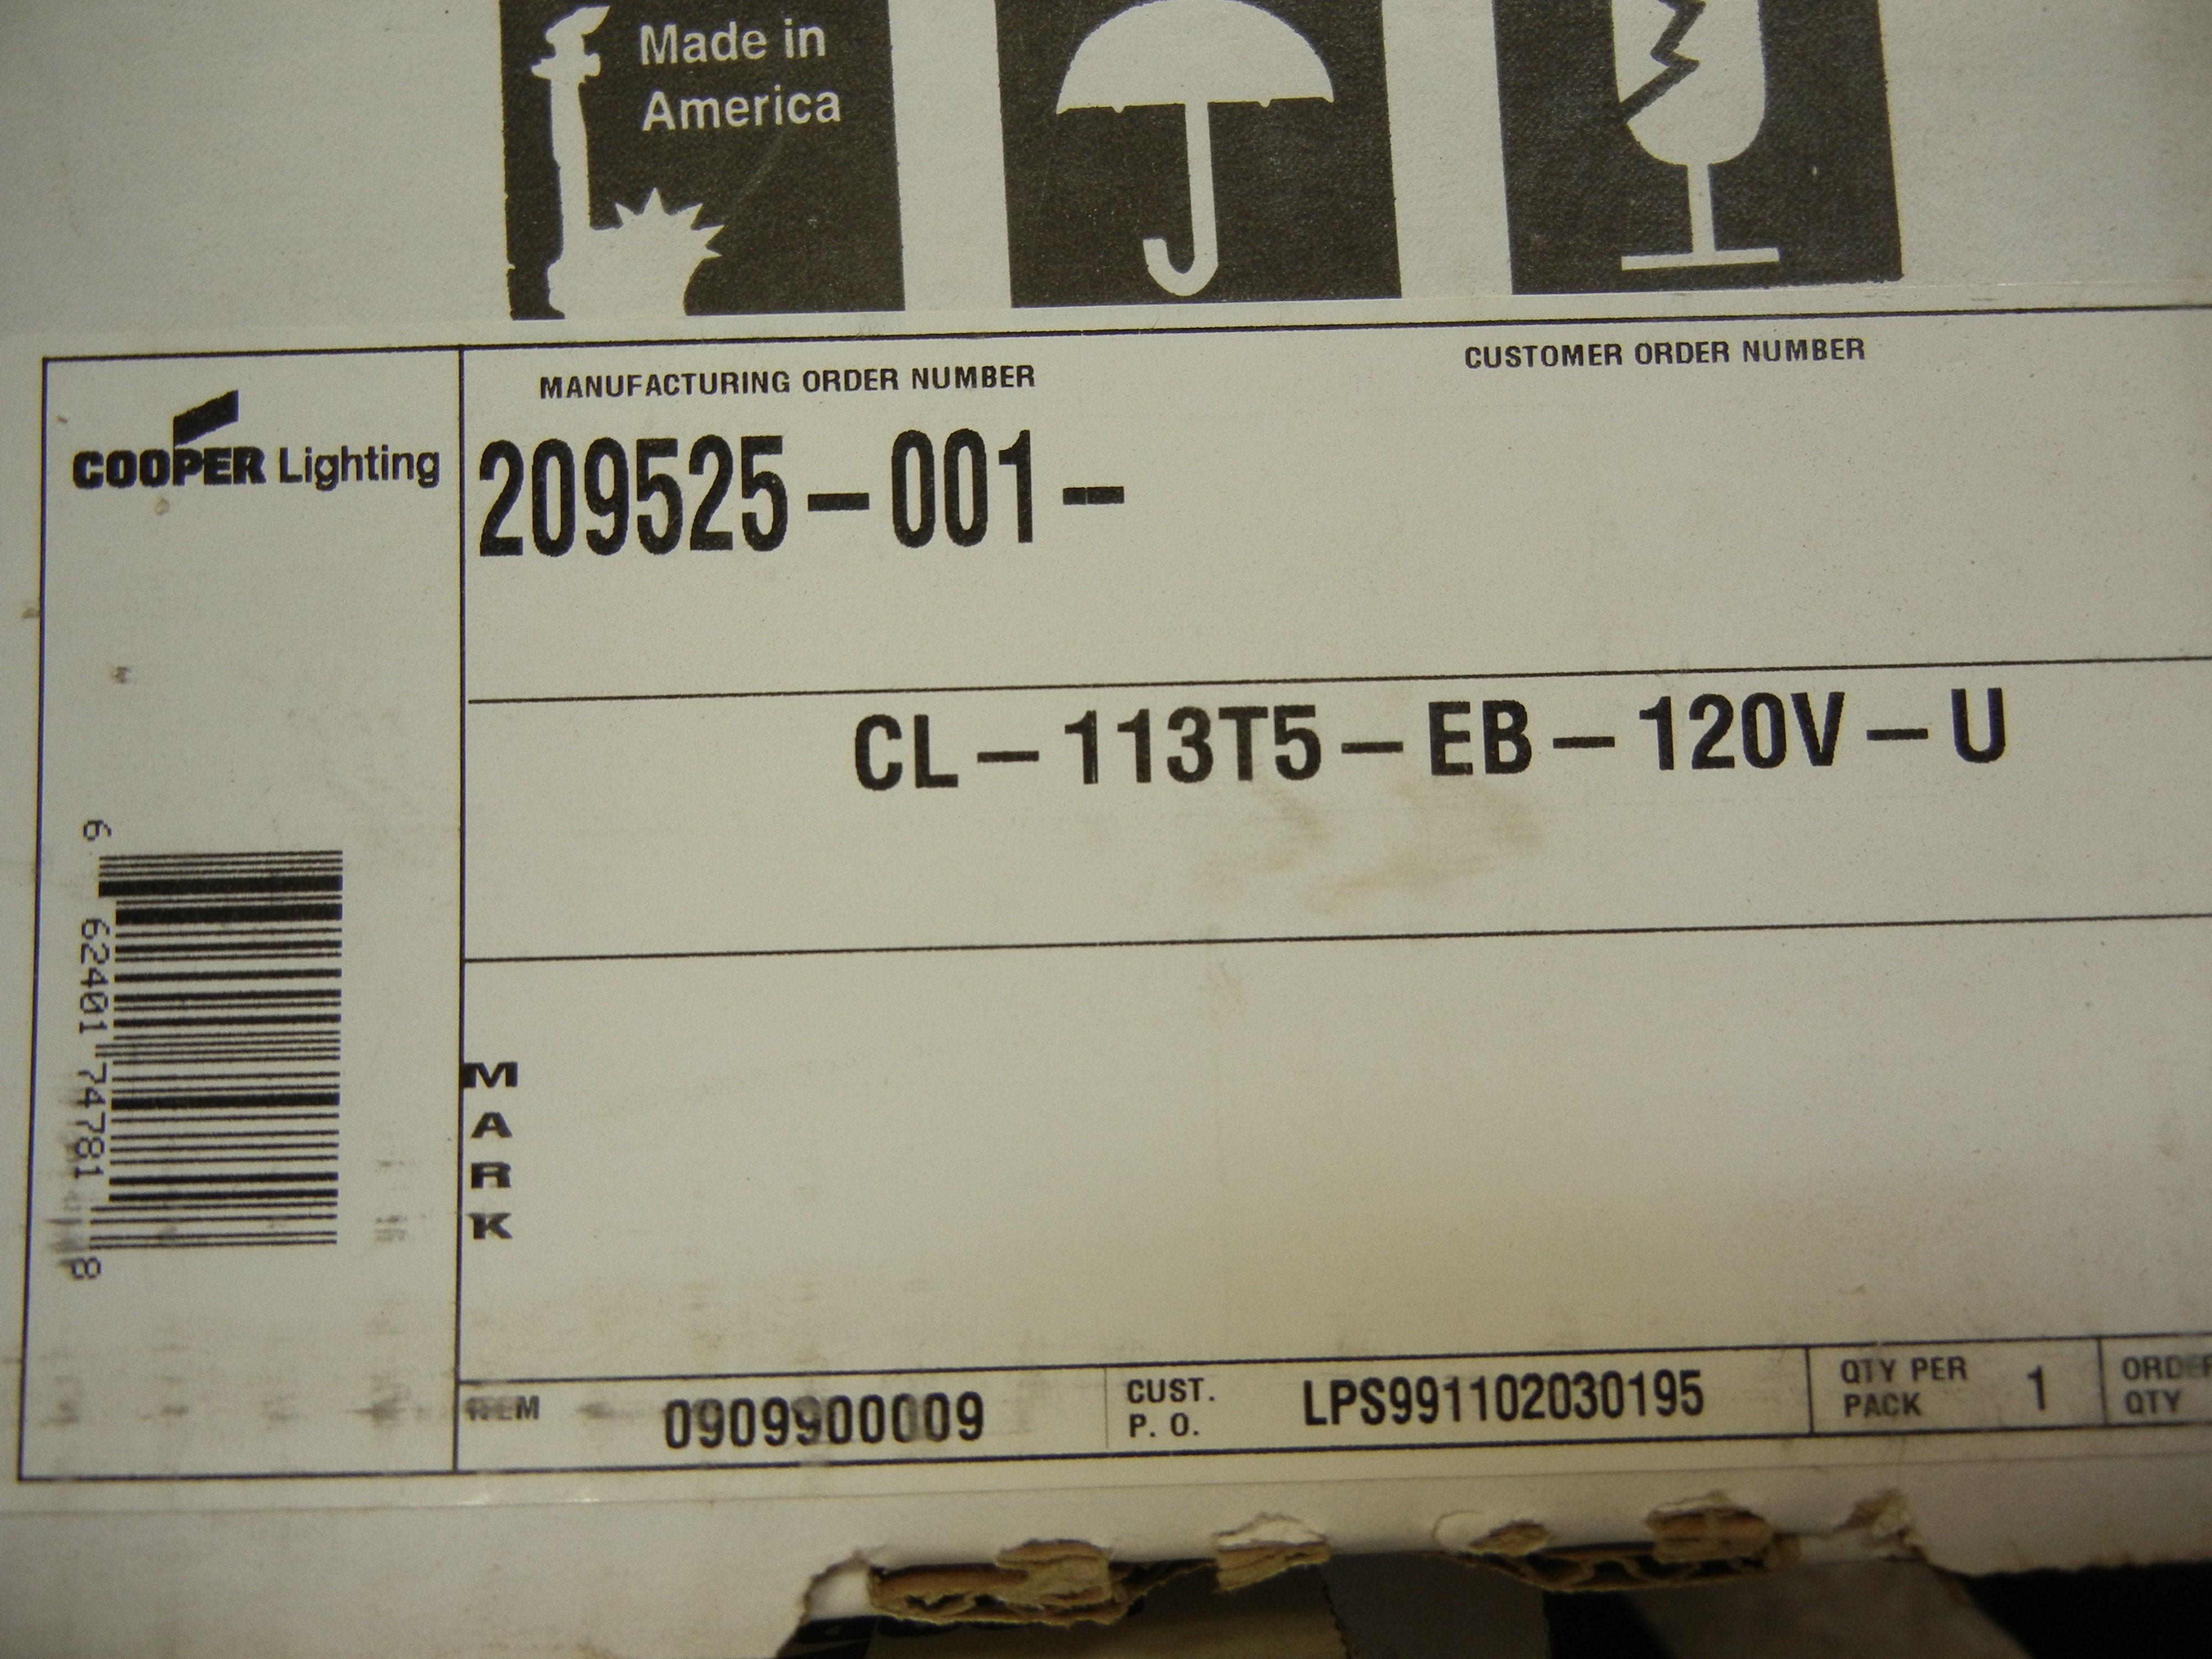 Lot-(23) Assorted Cooper Fluorescent Light Fixtures - Image 3 of 3